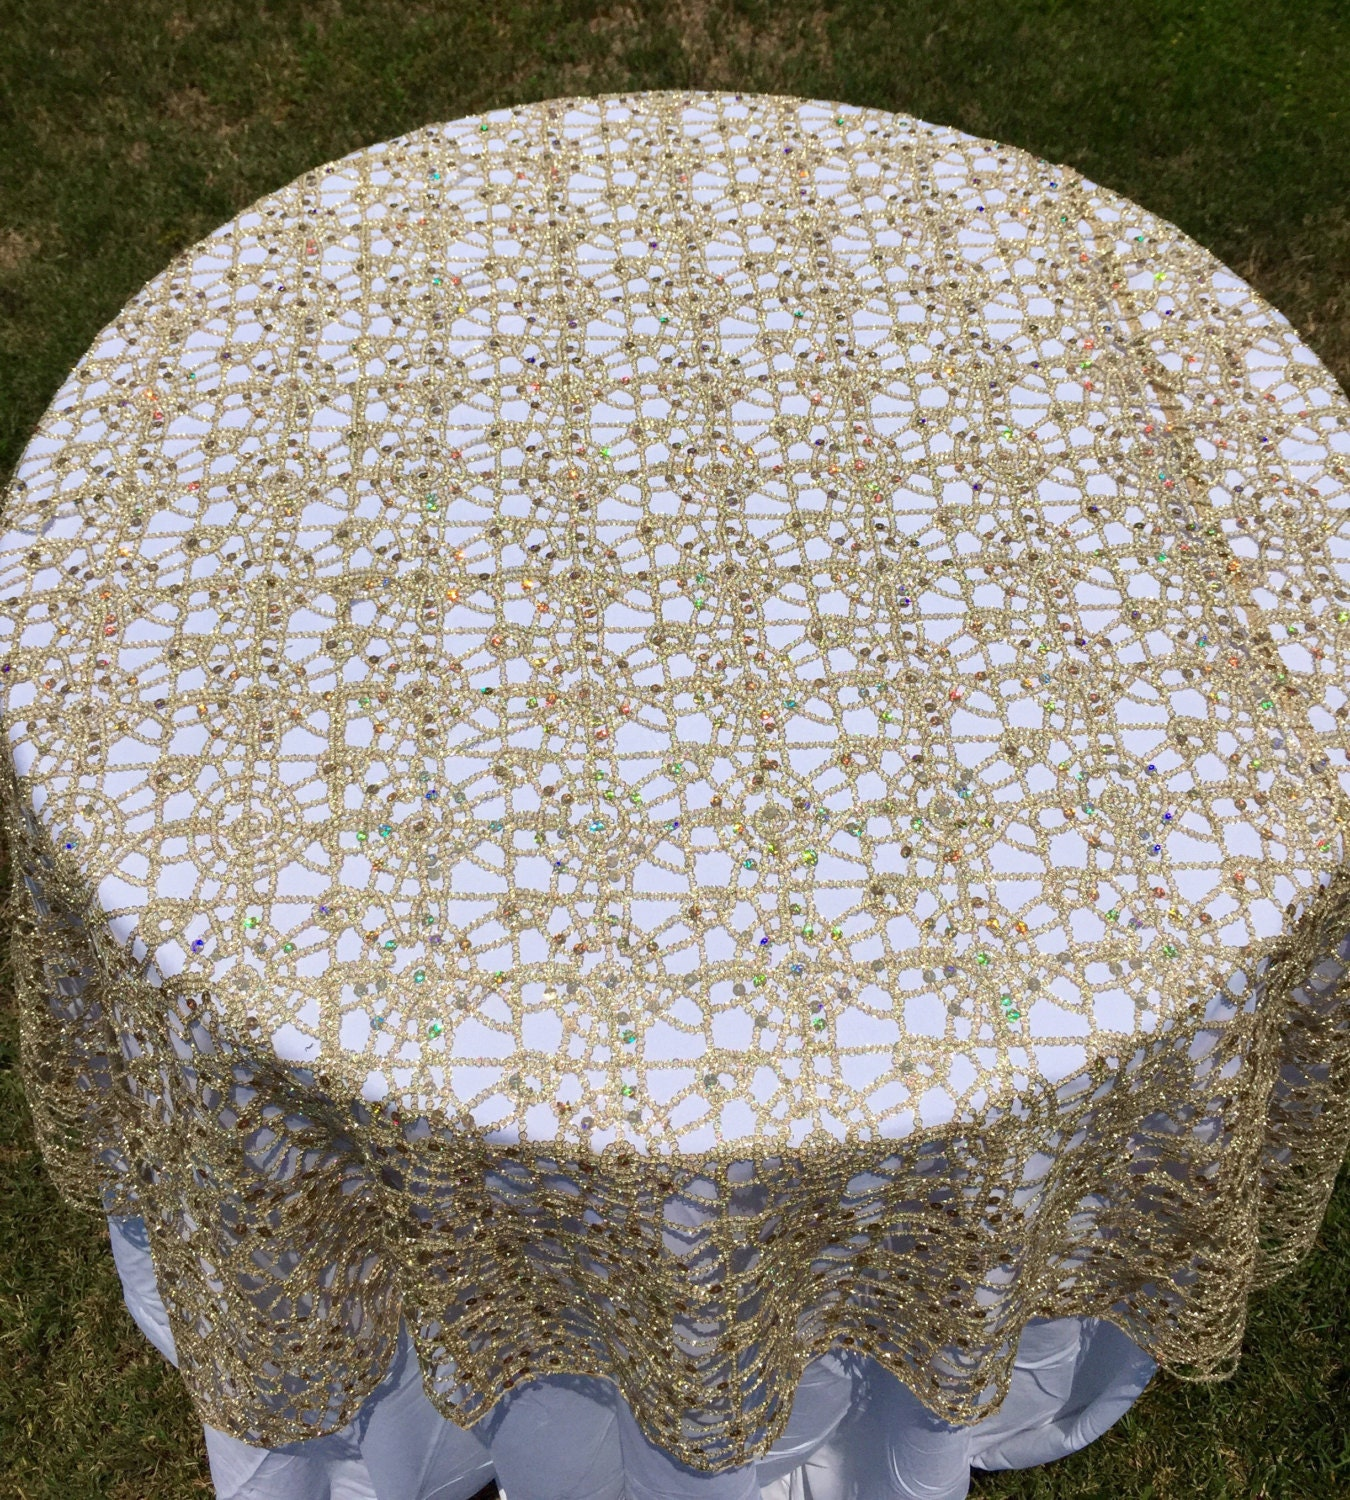 Gold Lace Tablecloth, Silver Sequence Chain Lace Table Overlay, Lace  Tablecloth, Wedding Decor, Table Runner, Table Cloth, Lace, Sequin